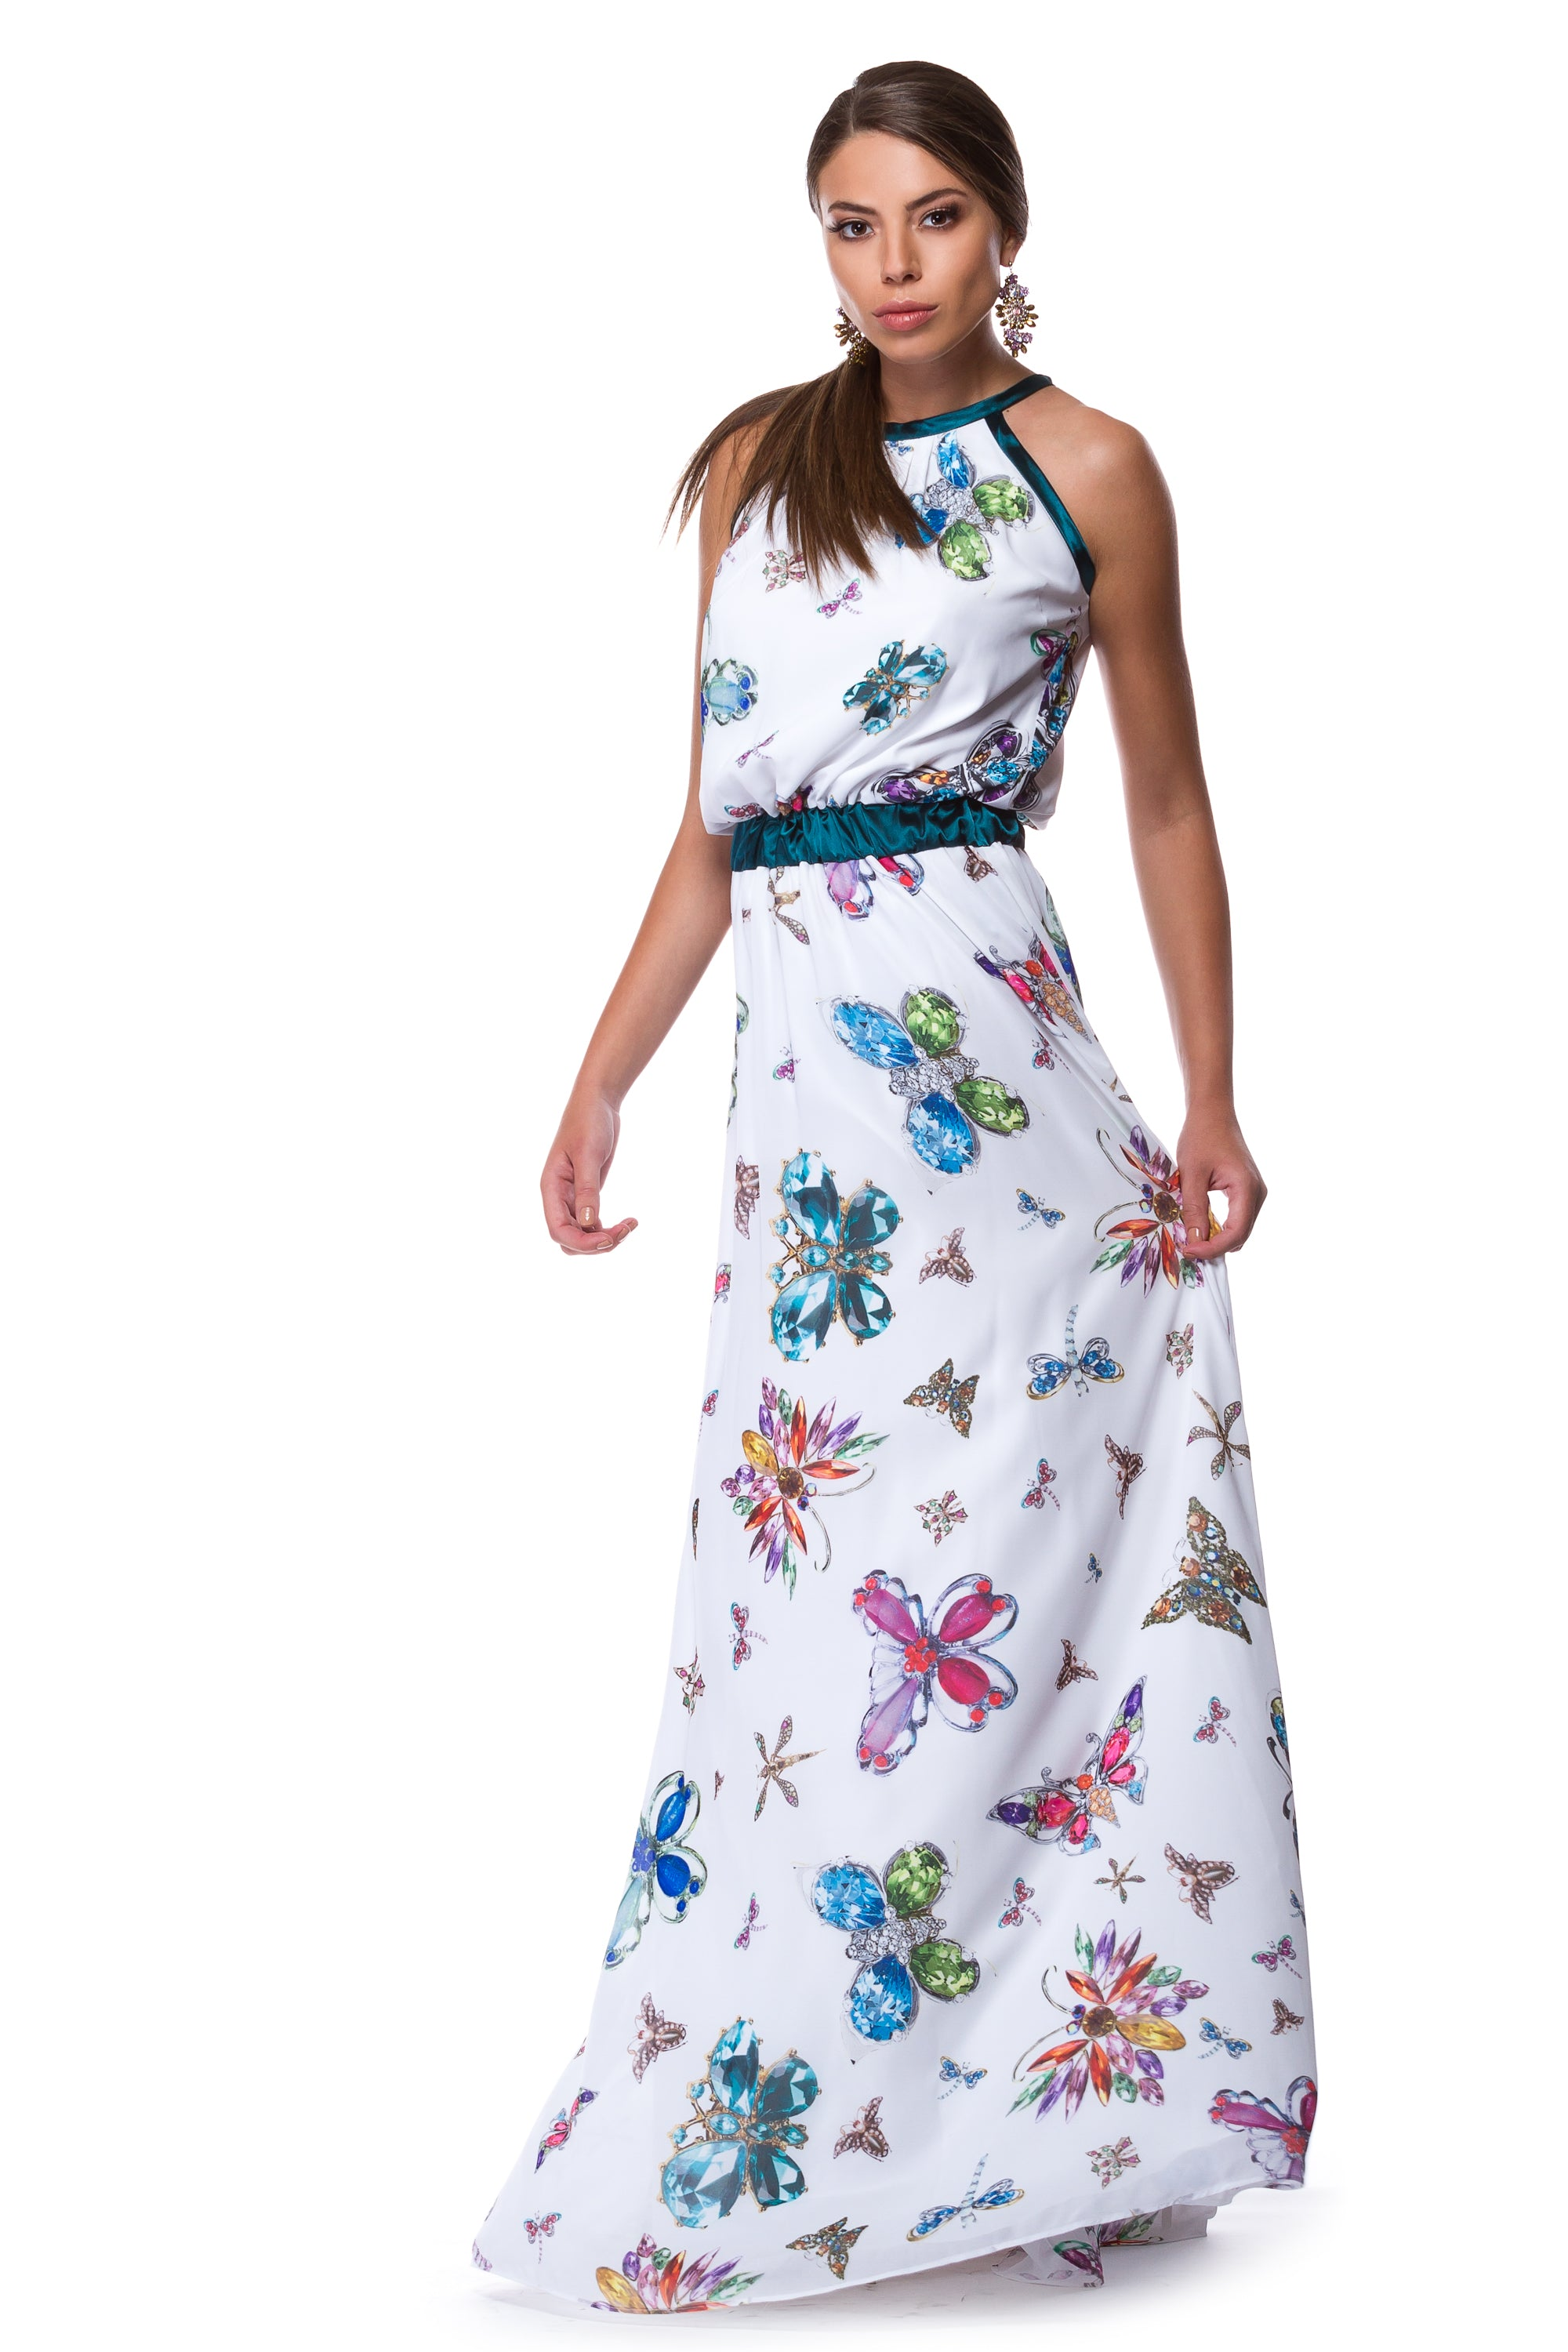 Long white chiffon dress with butterfly dress WDR-0005